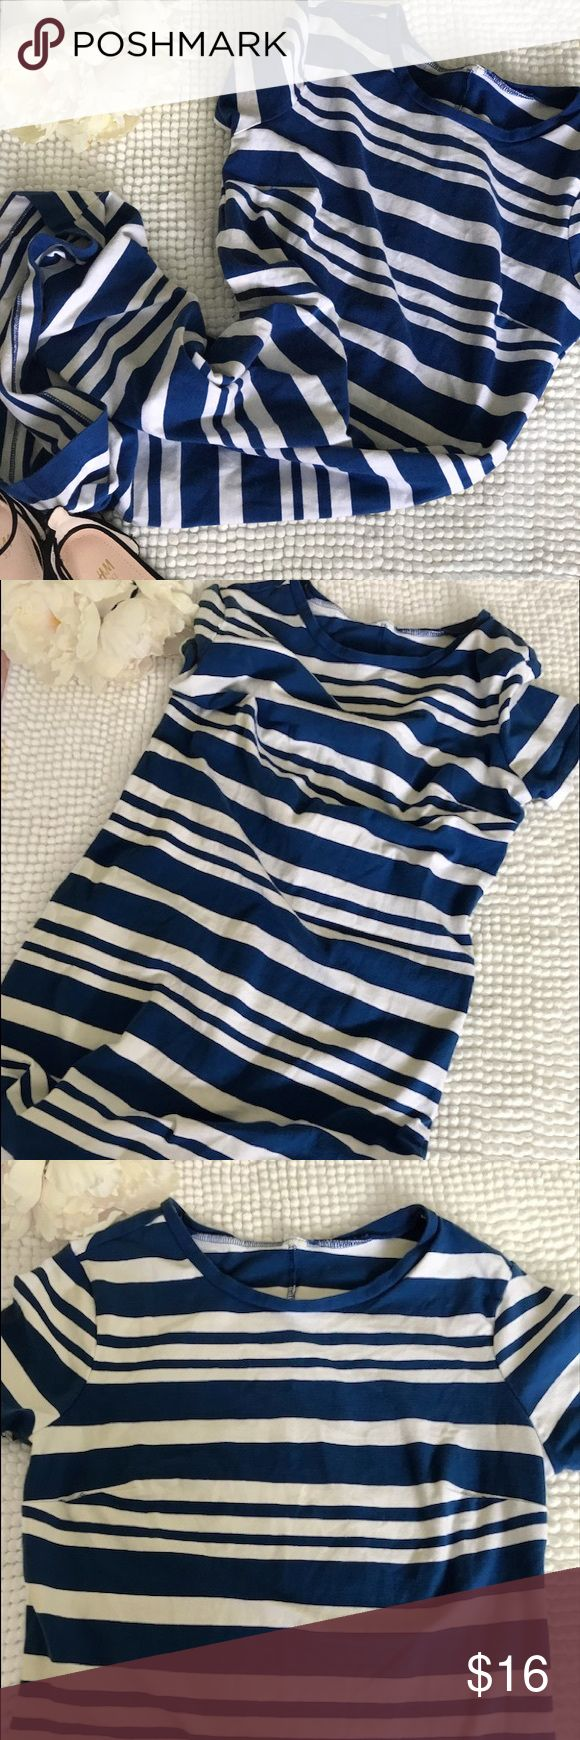 {Old Navy body con dress} •Old Navy striped body con dress• blue and white striped• super soft and comfortable• casual for every day wear• any questions please feel free to ask• reasonable offers are welcomed• Old Navy Dresses